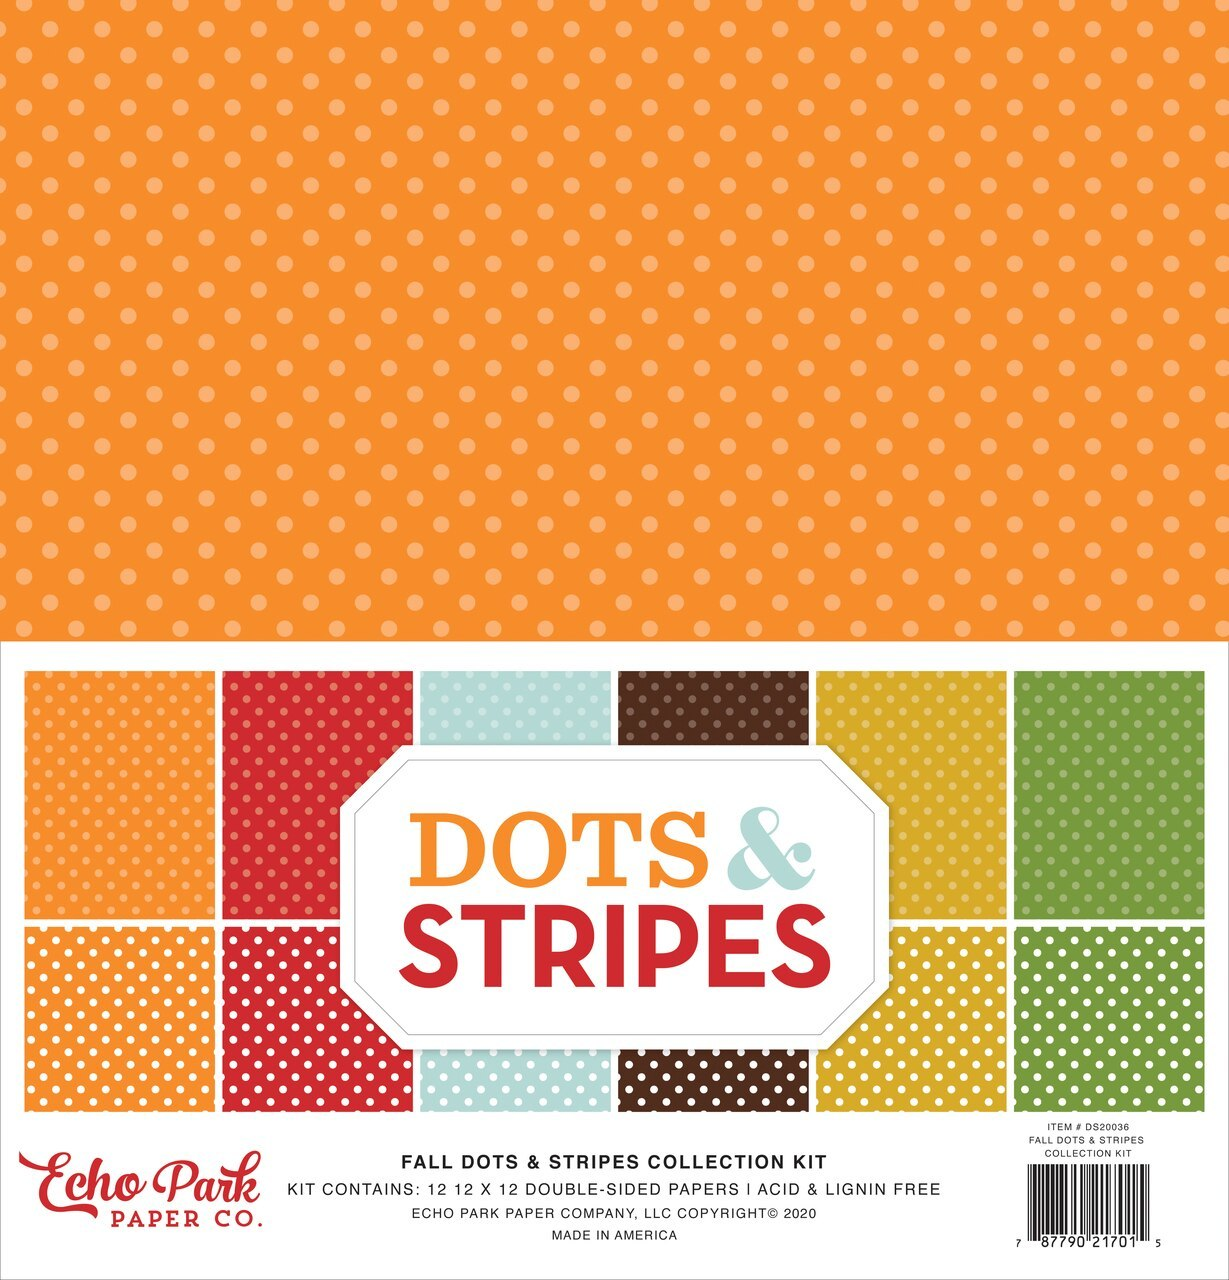 Fall Dots & Stripes